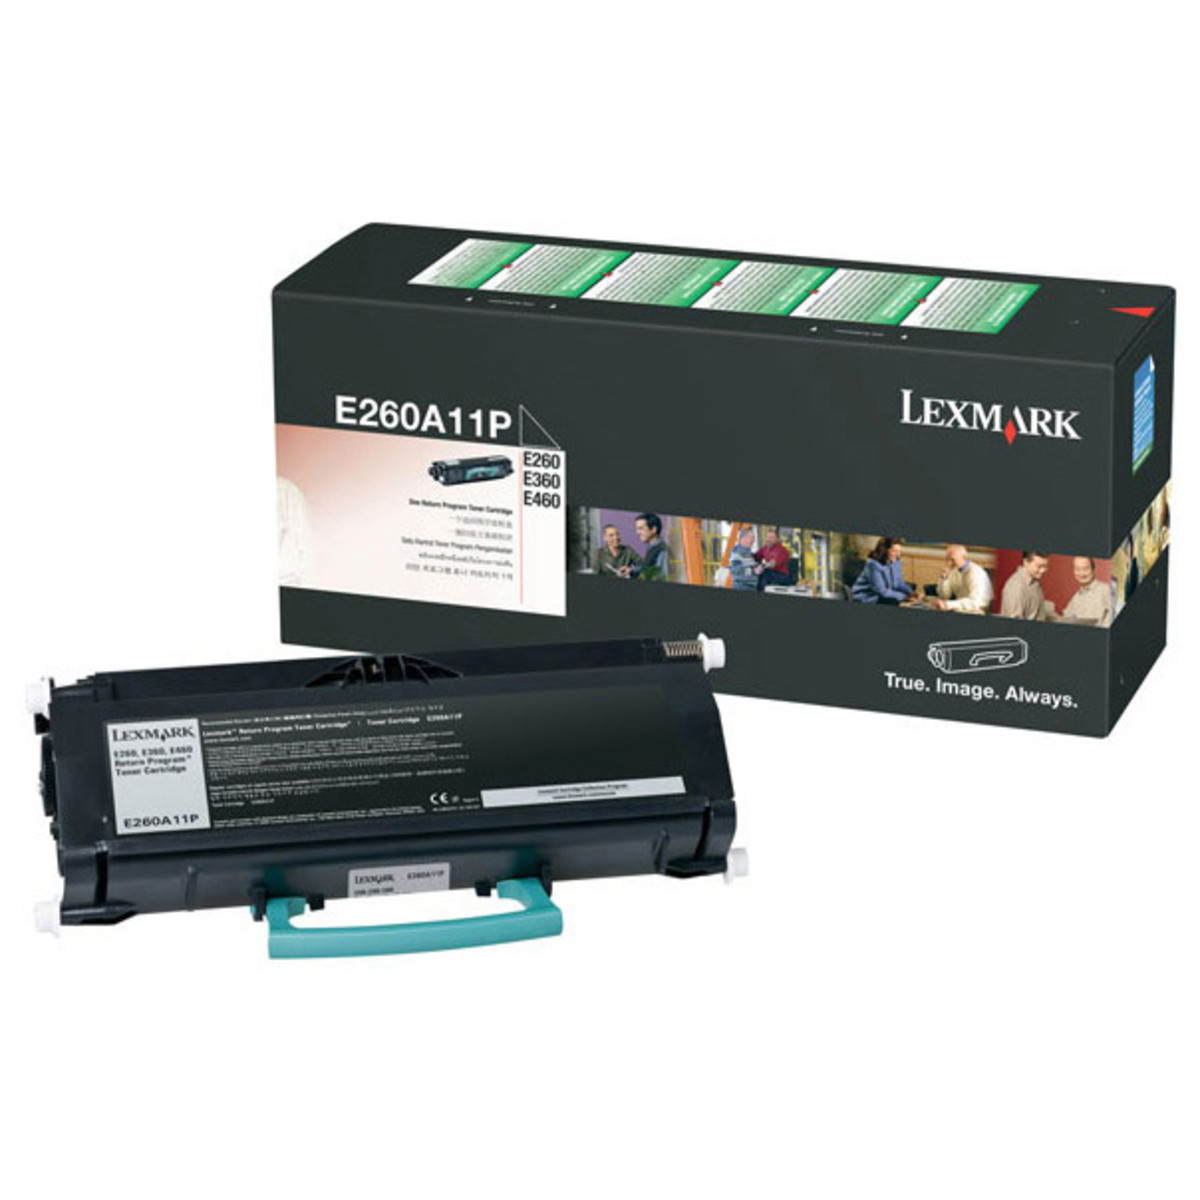 Lexmark E260A11P Black Prebate Toner Cartridge